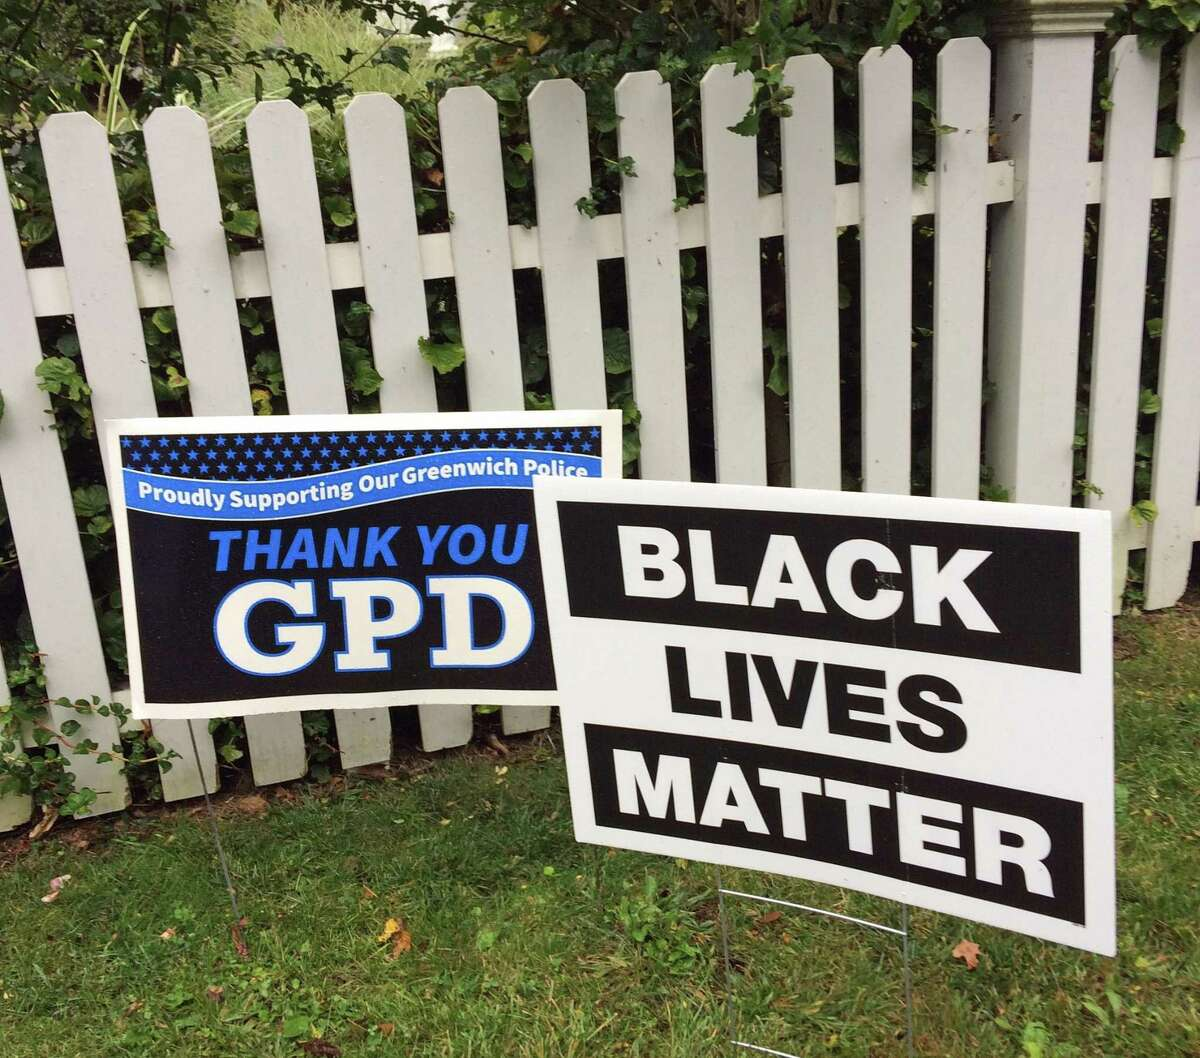 A Greenwich Police Department lawn sign next to a Black Lives Matter sign in Greenwich.